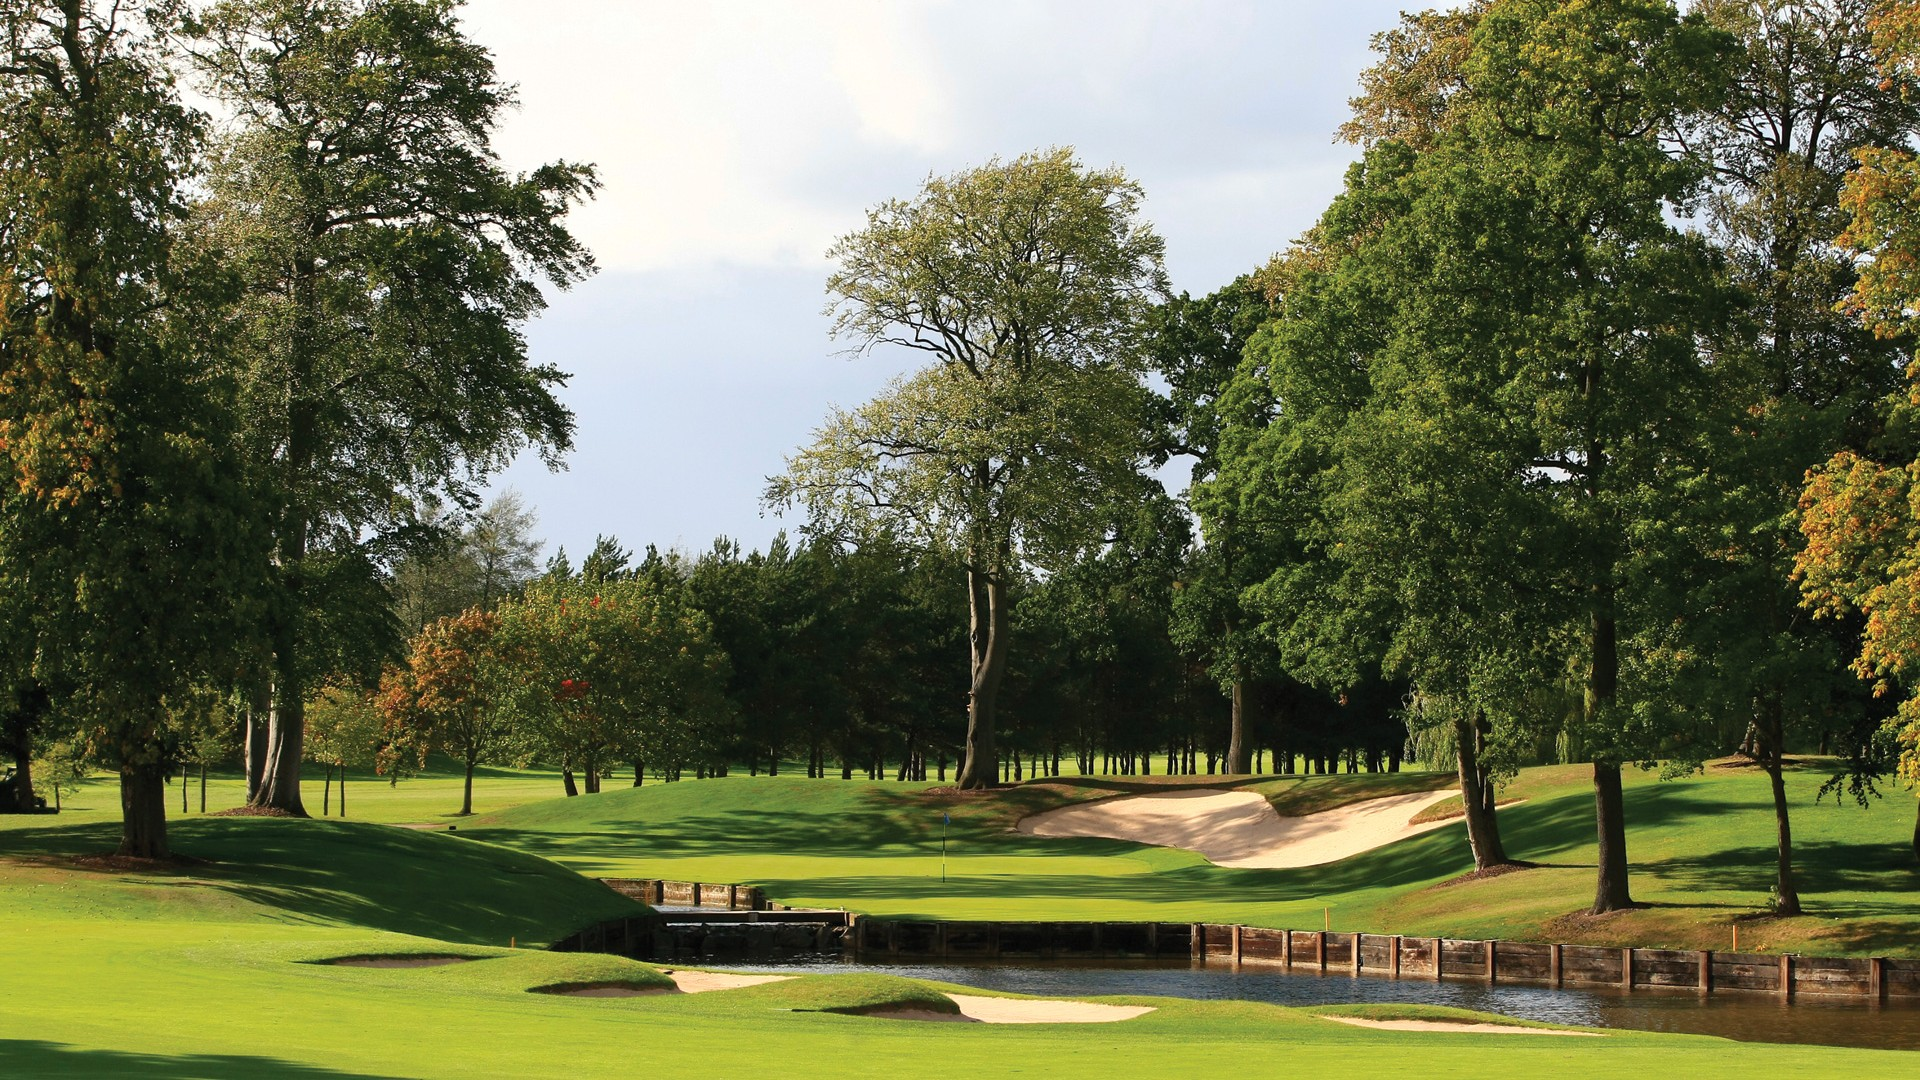 The Belfry, The Brabazon course, Warwickshire, England